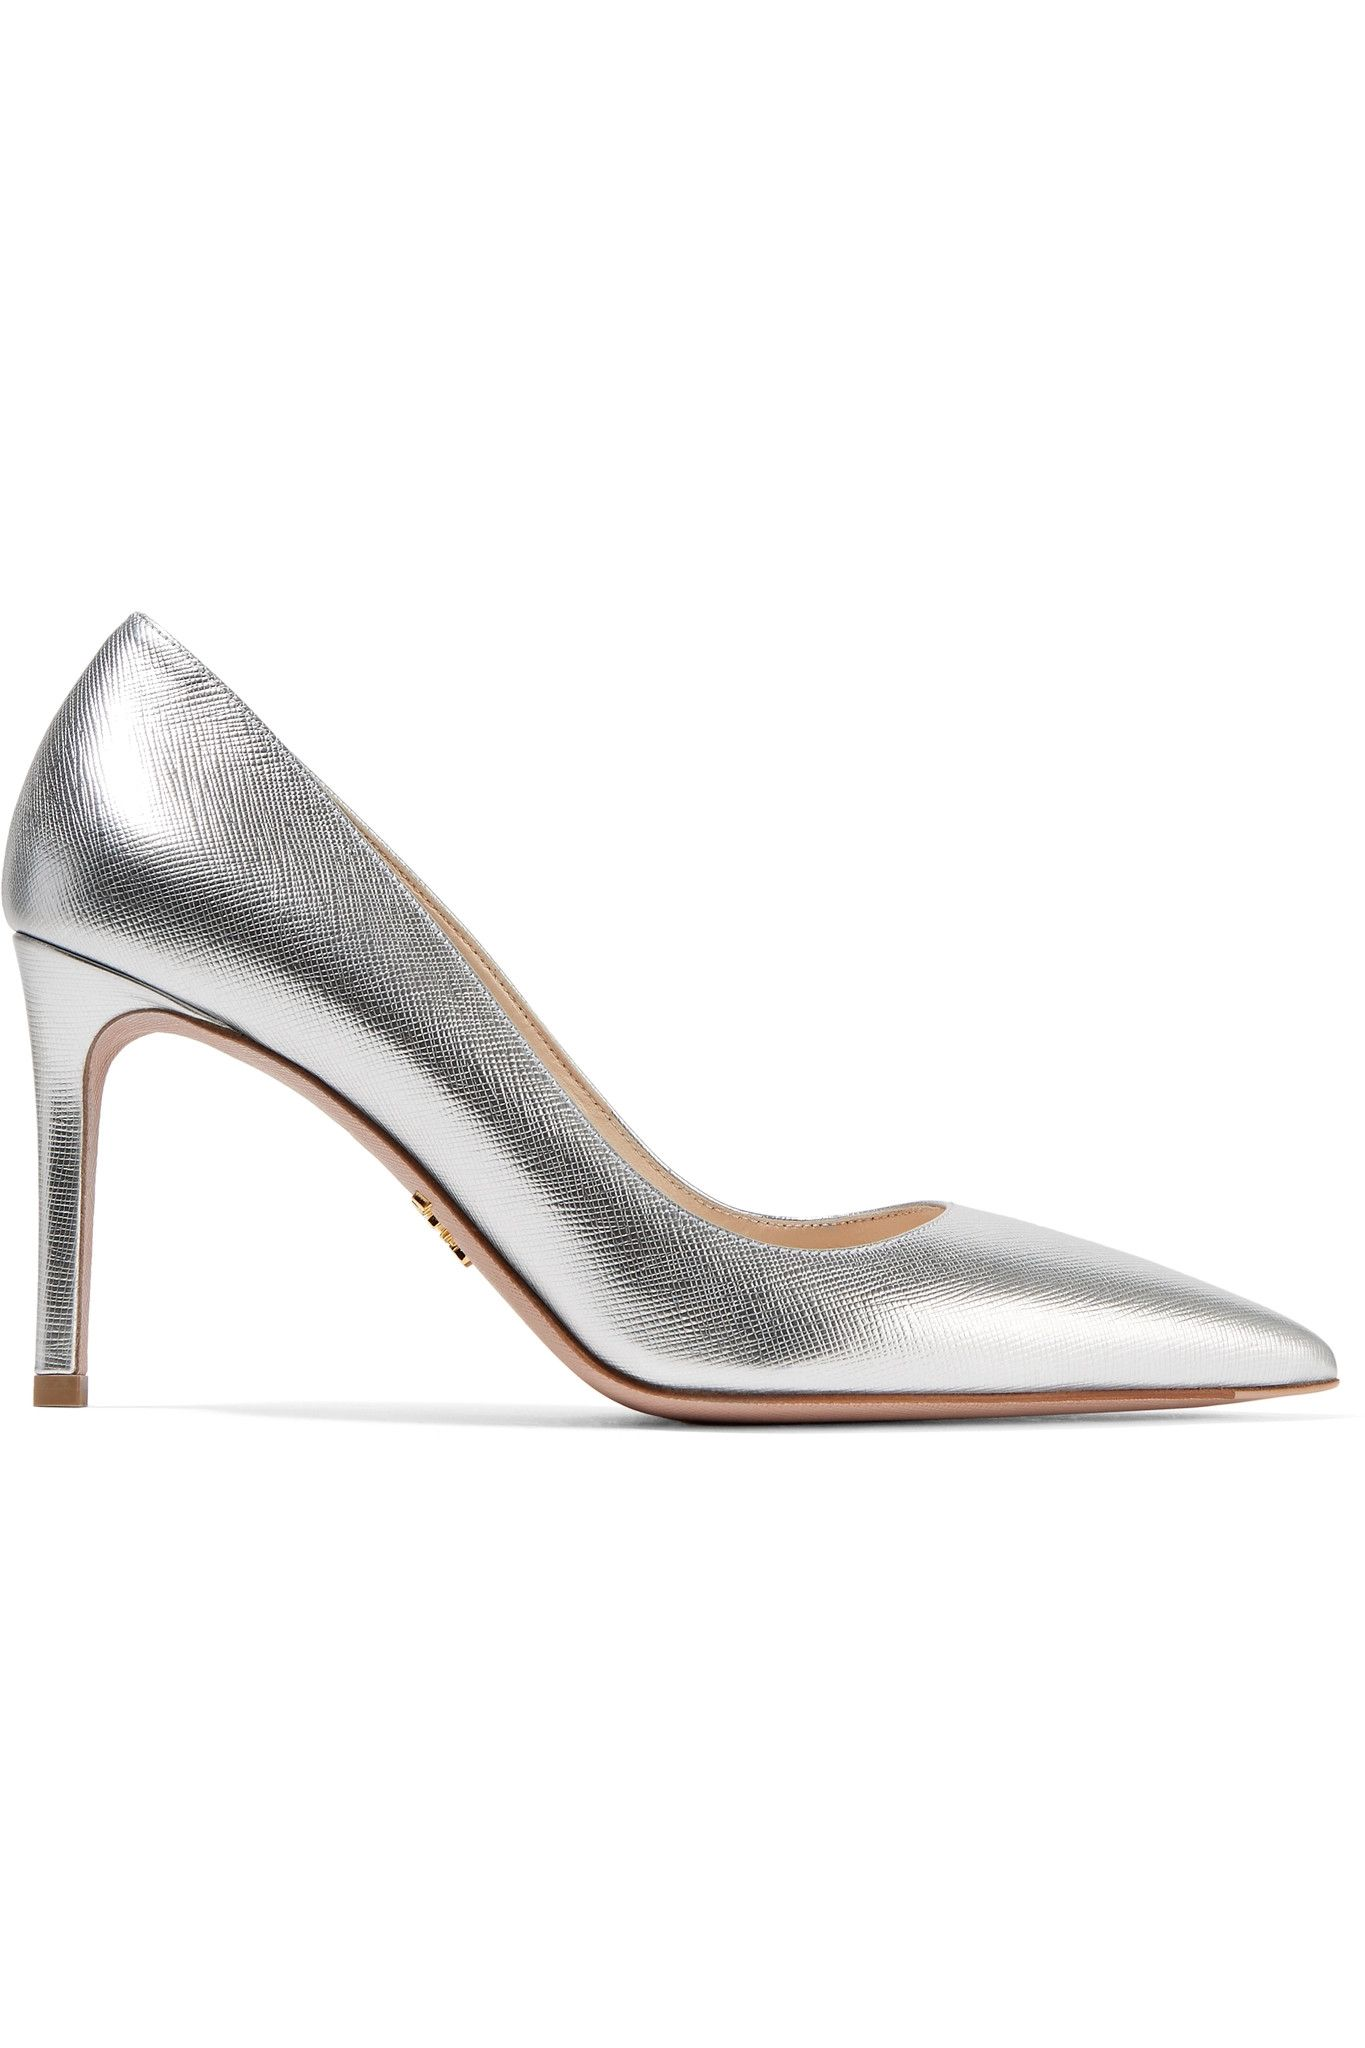 Metallic Textured-leather Pumps - Silver Prada Shop For Collections Cheap Price Inexpensive Sale Online Clearance Online Cheap Real tXP8DZ